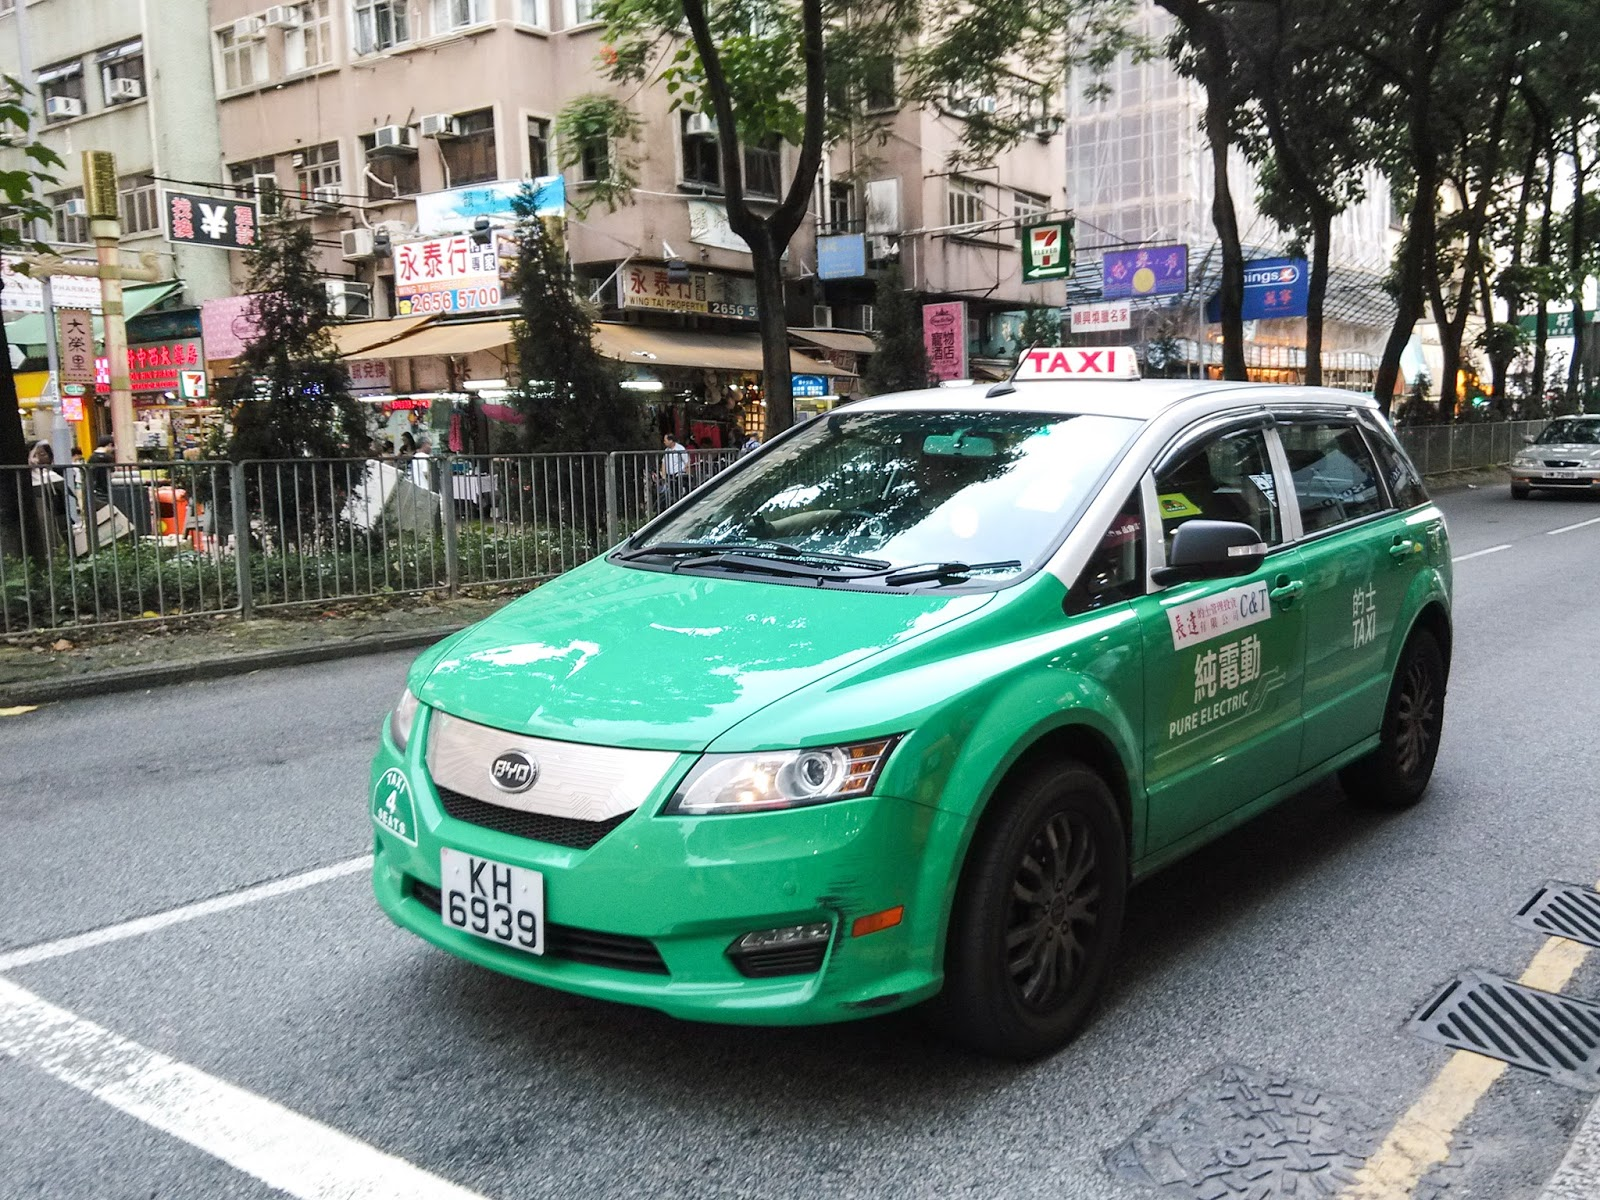 Samsung S 450 Million Stake In Chinese Electric Car Firm Byd